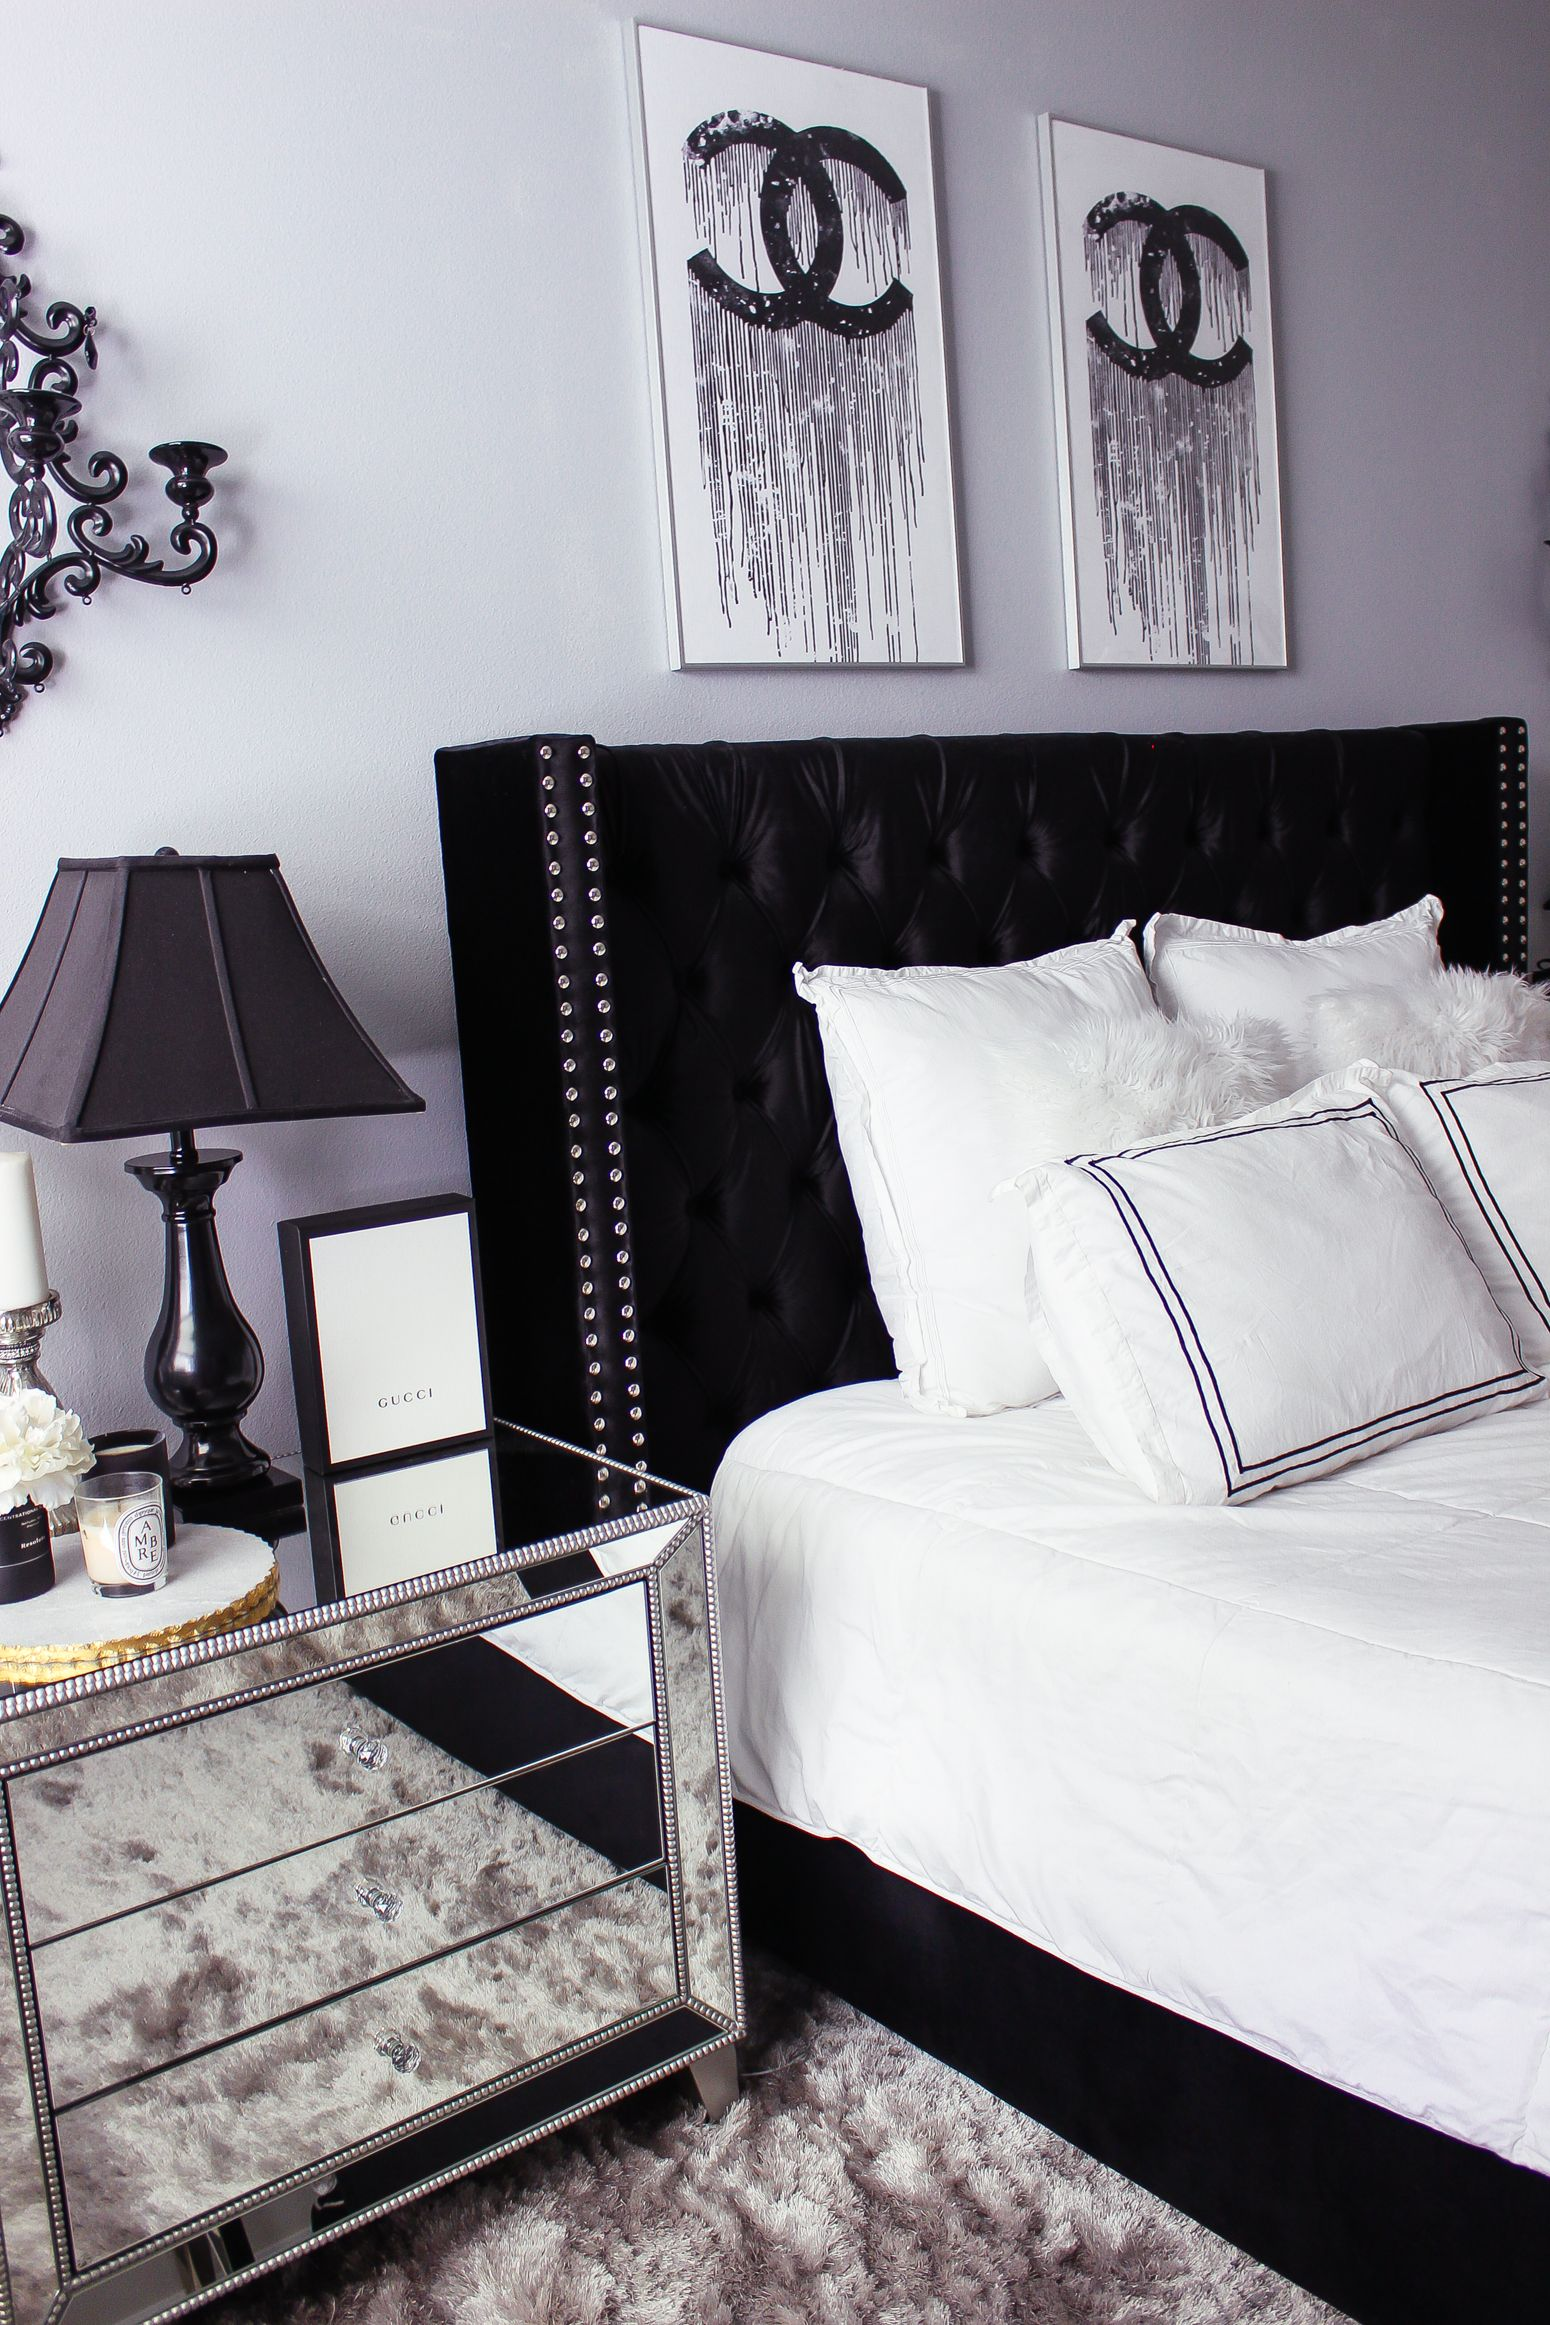 Black White Bedroom Decor Reveal White Bedroom Decor Black Bedroom Decor Black White Bedrooms